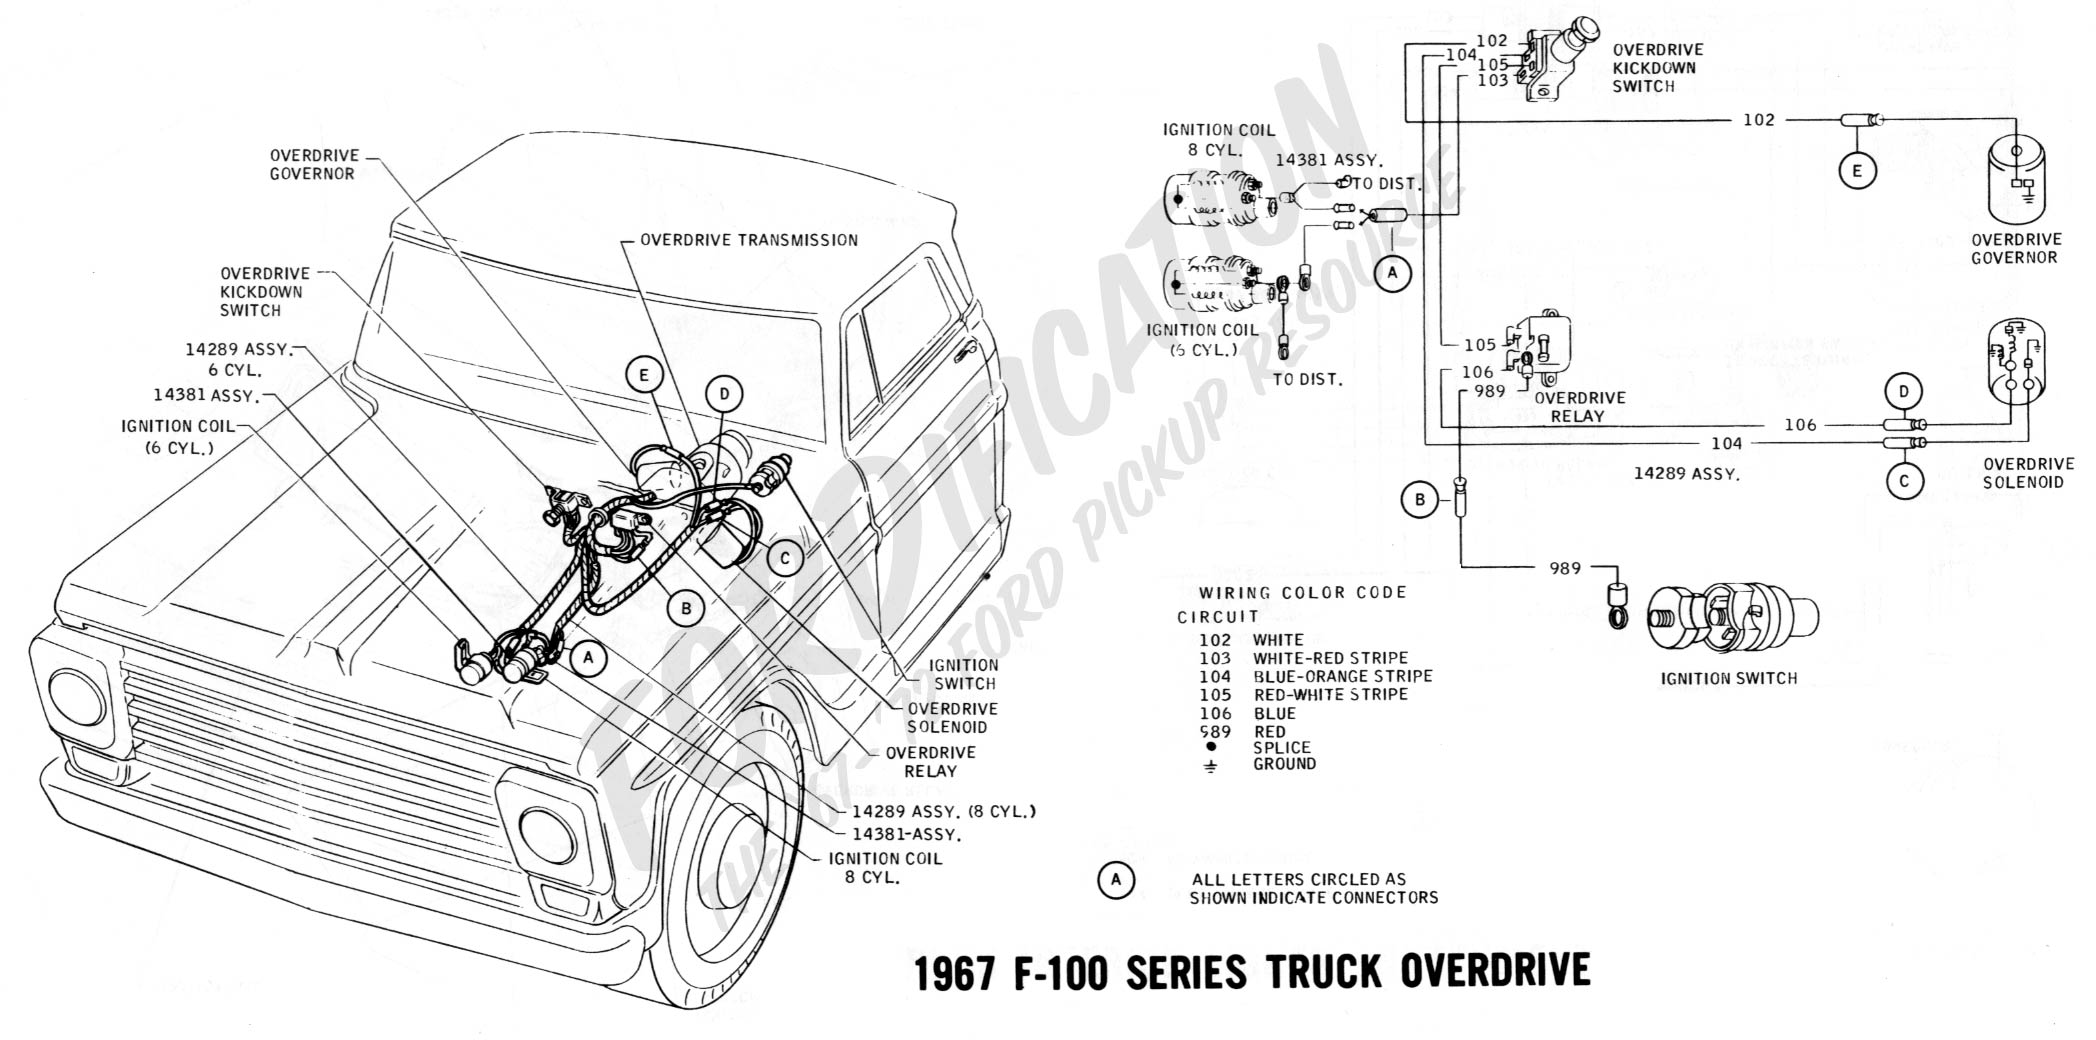 1967 ford f100 wiring harness wiring diagram detailed 1966 Ford F100 wiring harness 1967 ford truck 1968 wiring diagram detailed 1965 ford f 100 instrument panel wiring schematic 1967 ford f100 wiring harness